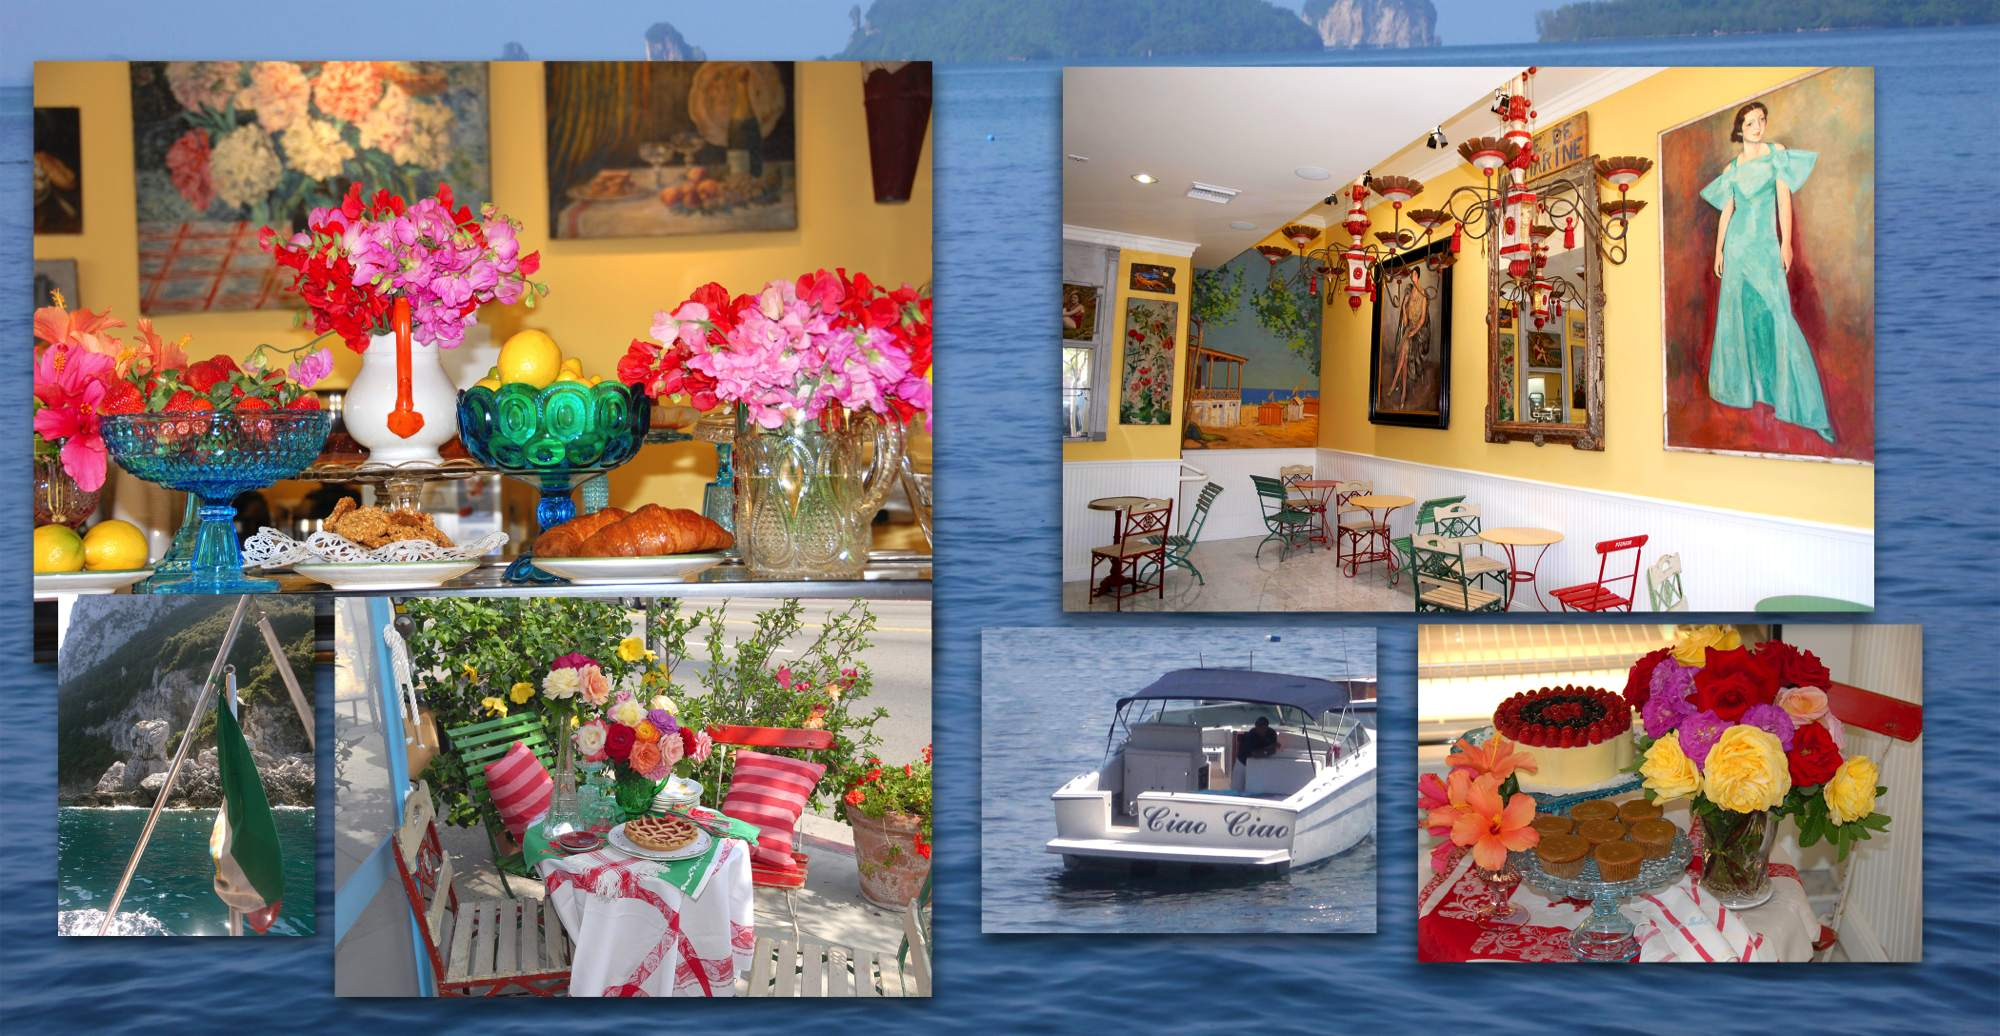 Image collage of interior of Dolce Isola, Croissants, outdoor seating and dessert displays